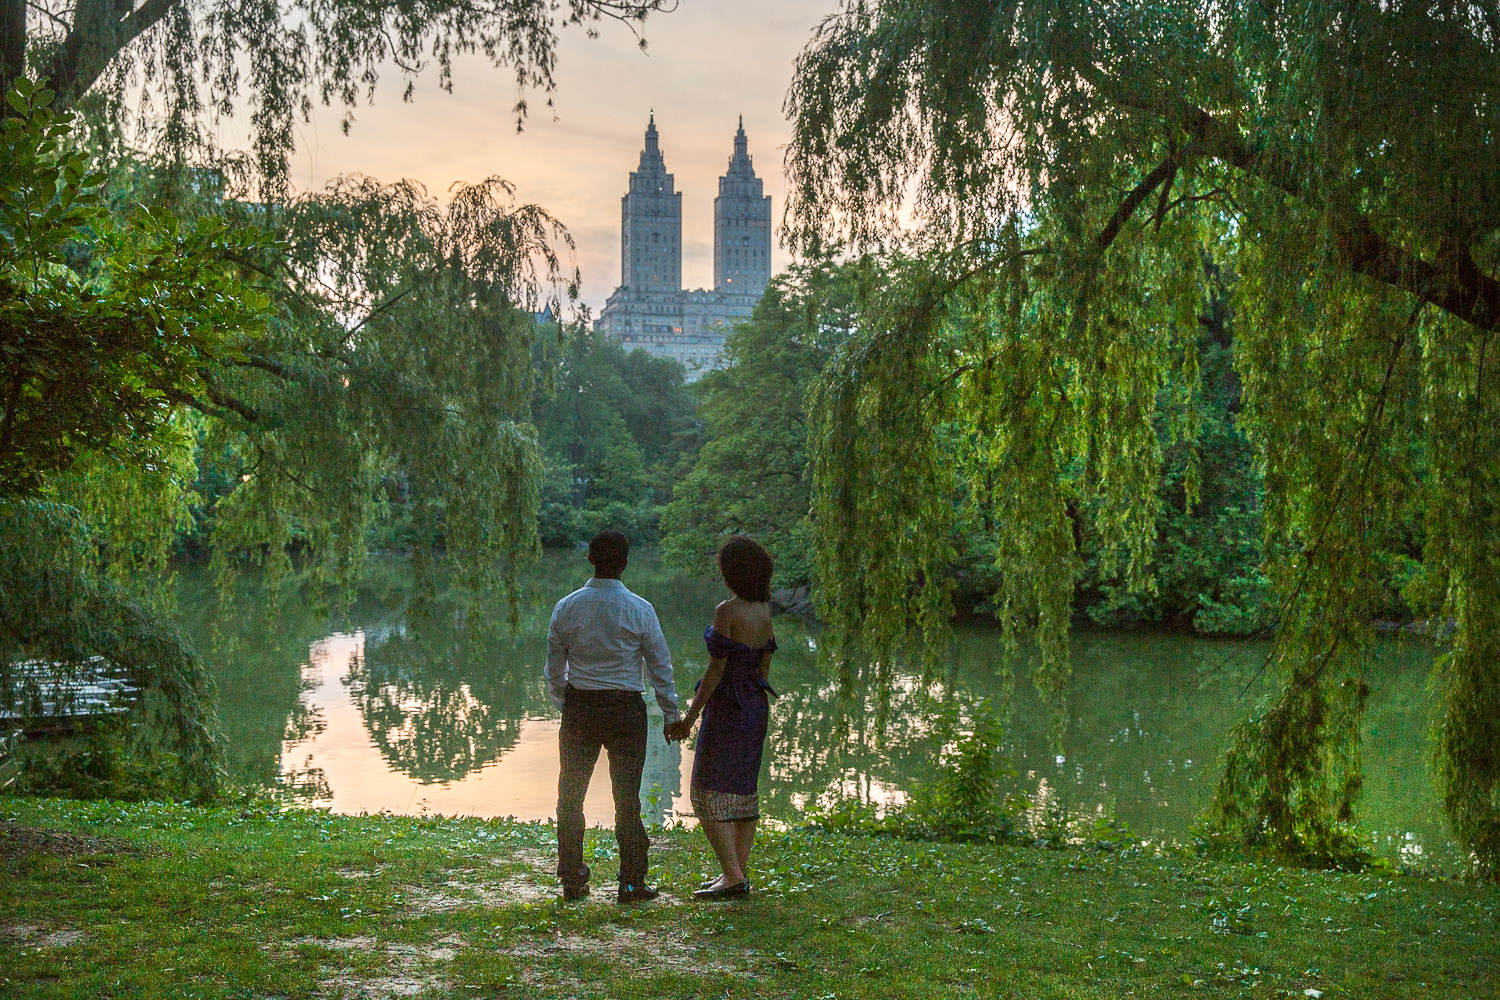 engagement-photography-central-park-nyc-60.jpg